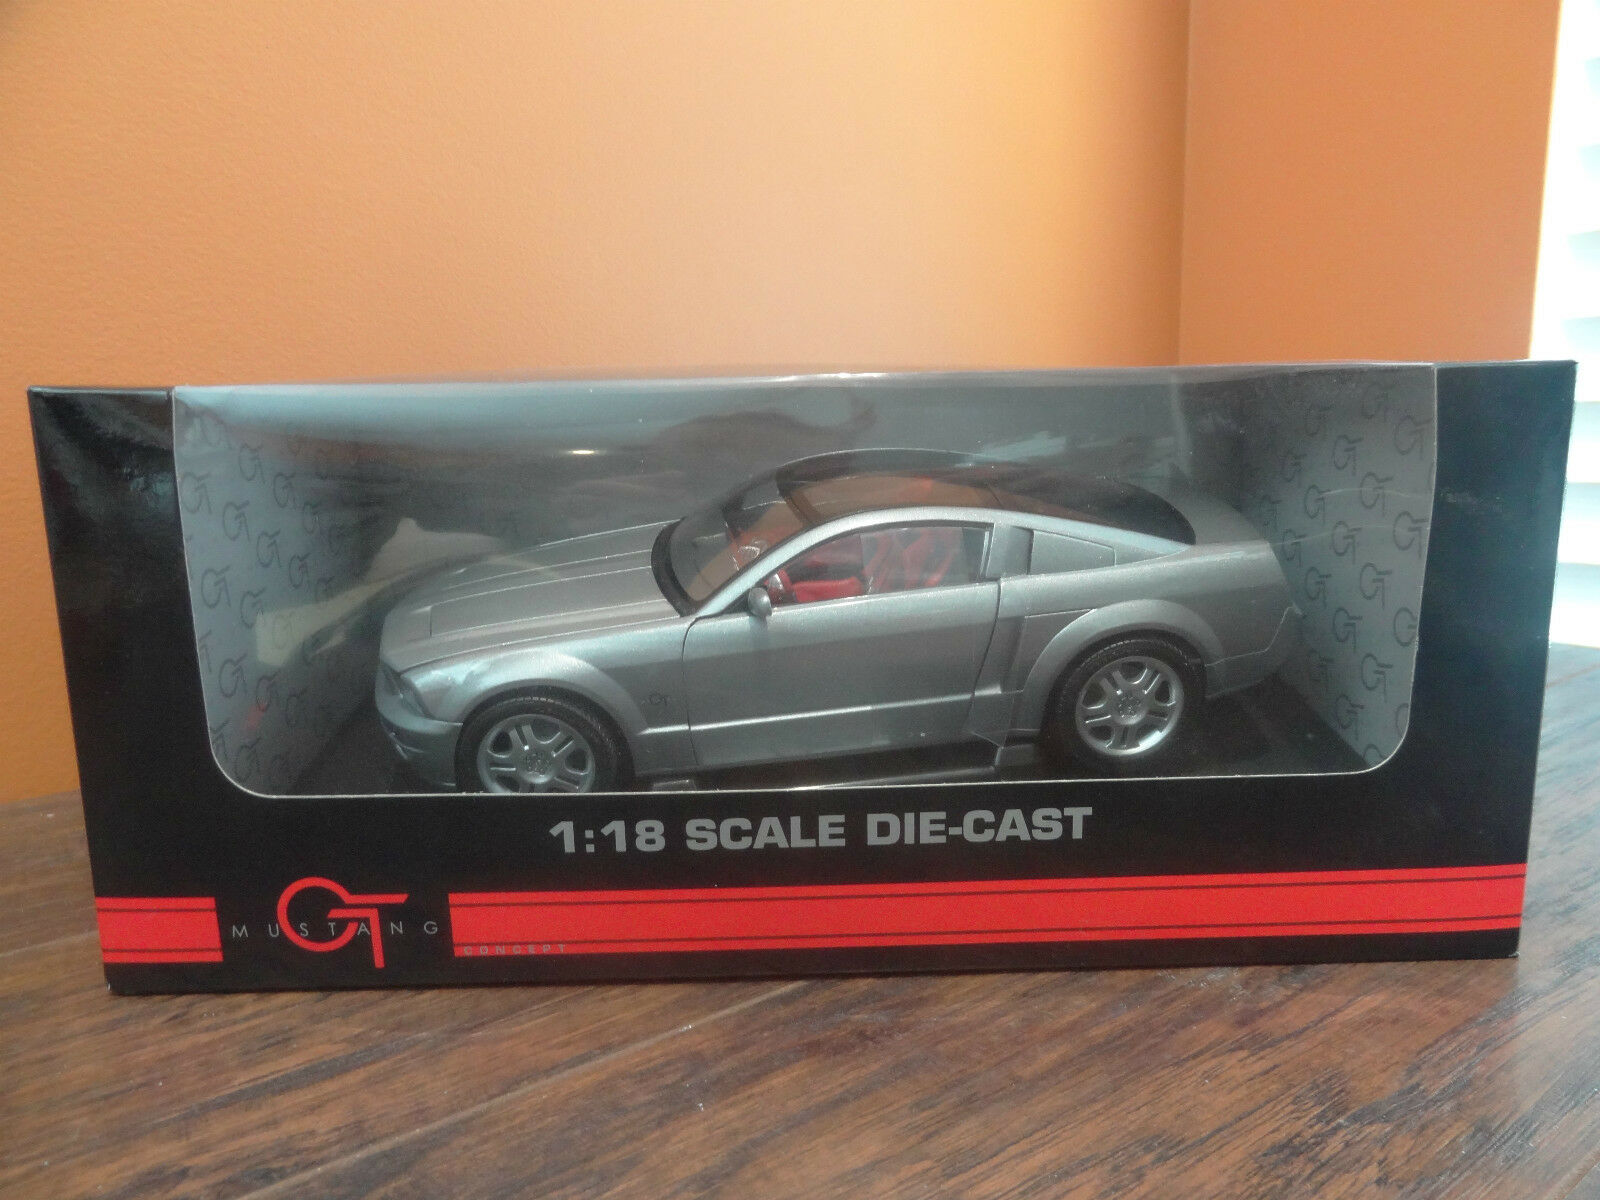 nuovo Beanship Ford Mustang GT Concept Sport auto argento 1 18 Scale Die Cast